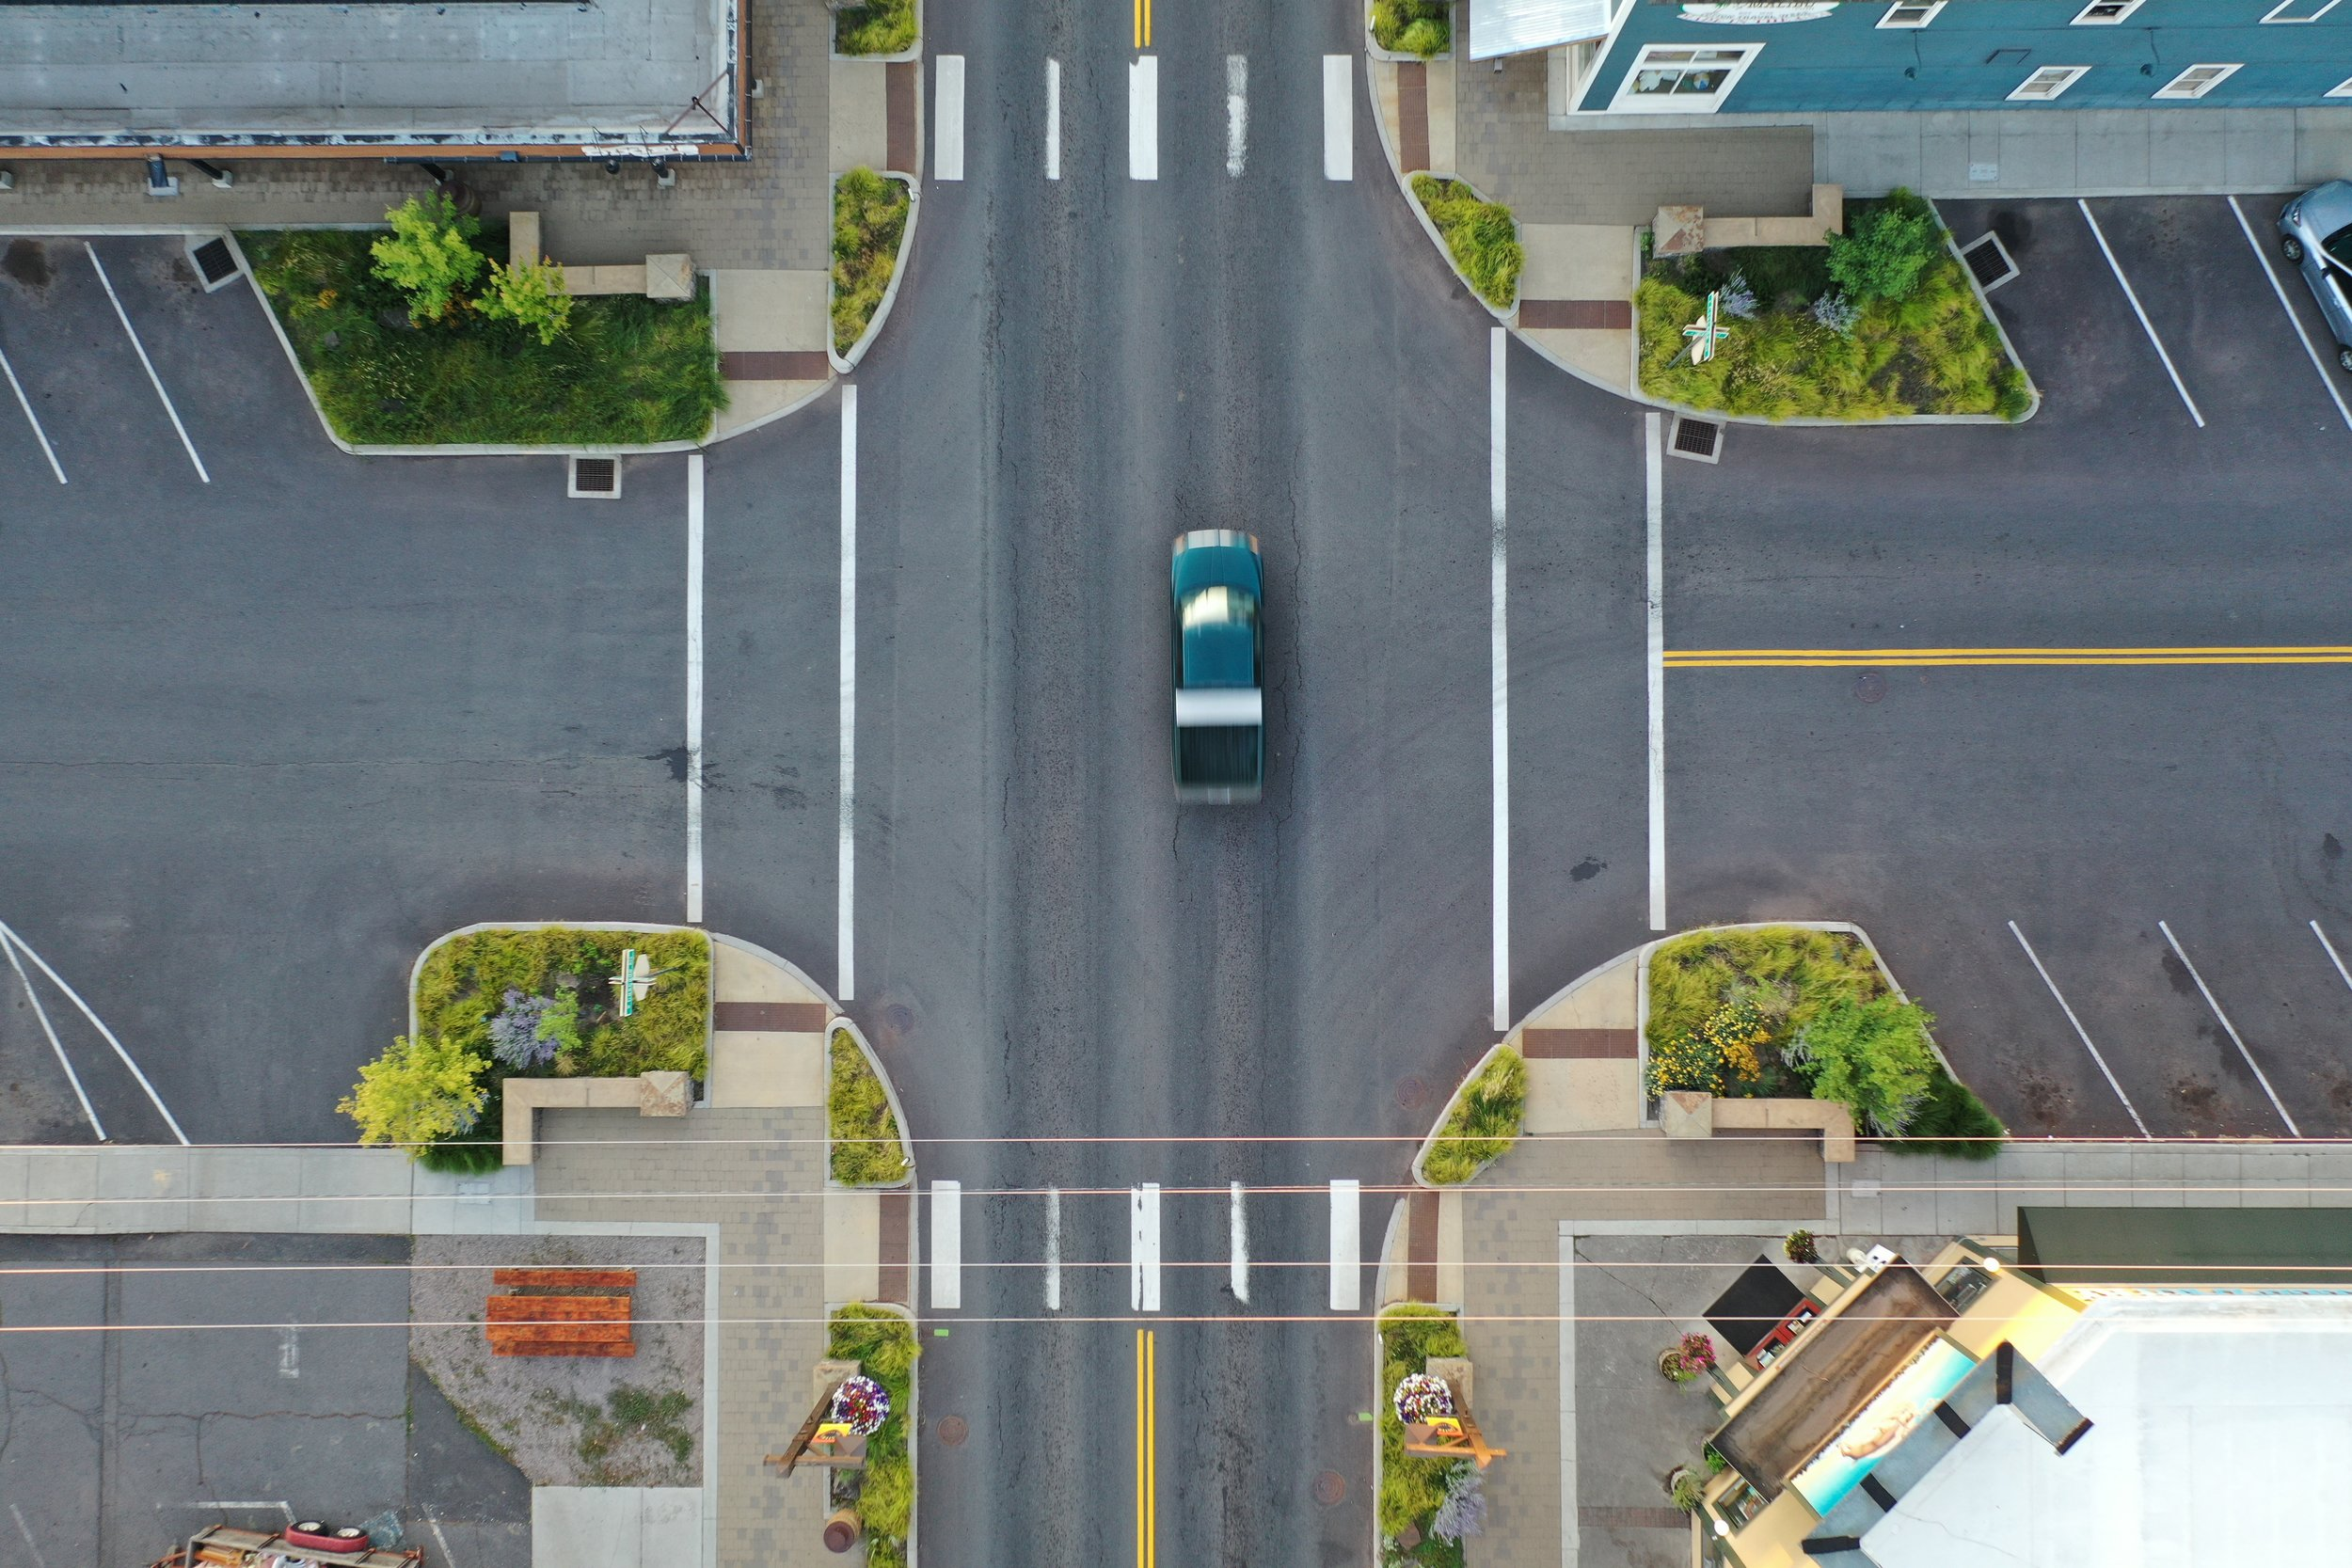 aerial photo of moving car in intersection surrounded by green planters in sisters, oregon